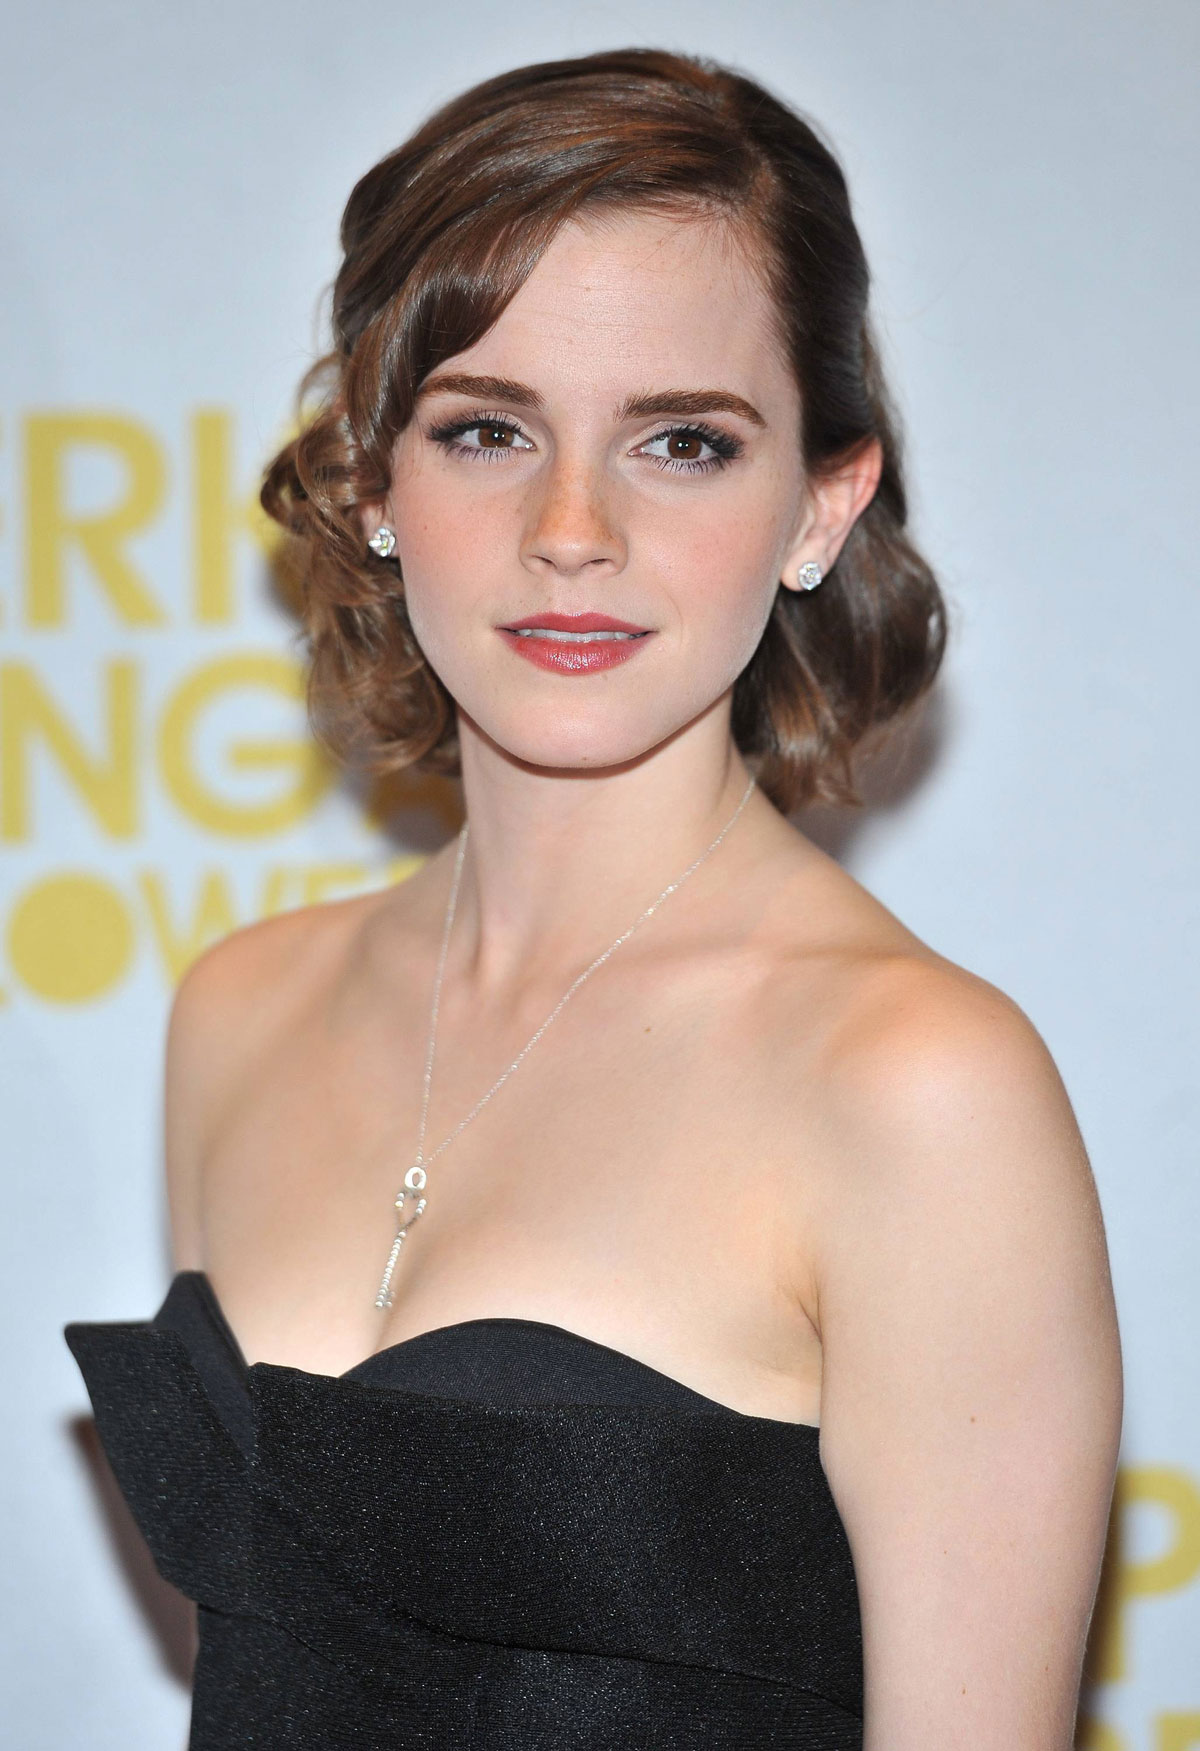 emma watson at perks of being a wallflower premiere in